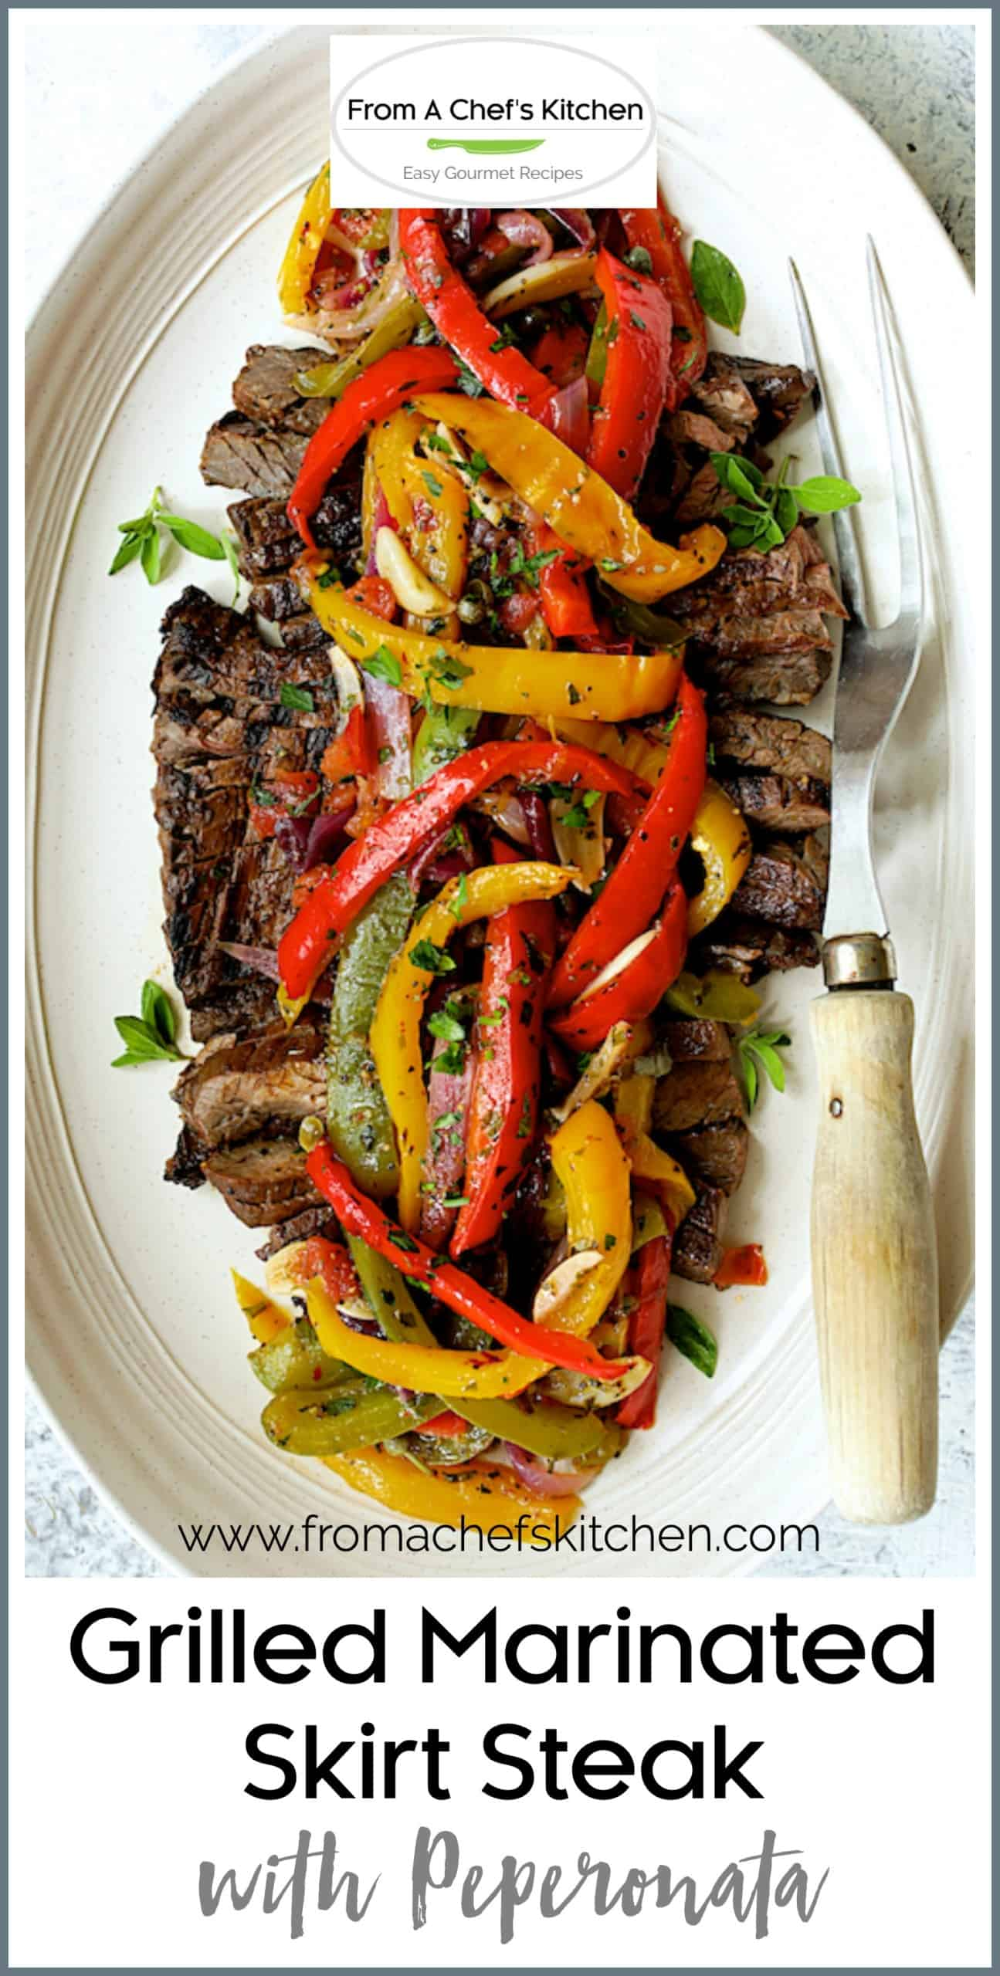 Grilled Marinated Skirt Steak with Peperonata is a dish ...